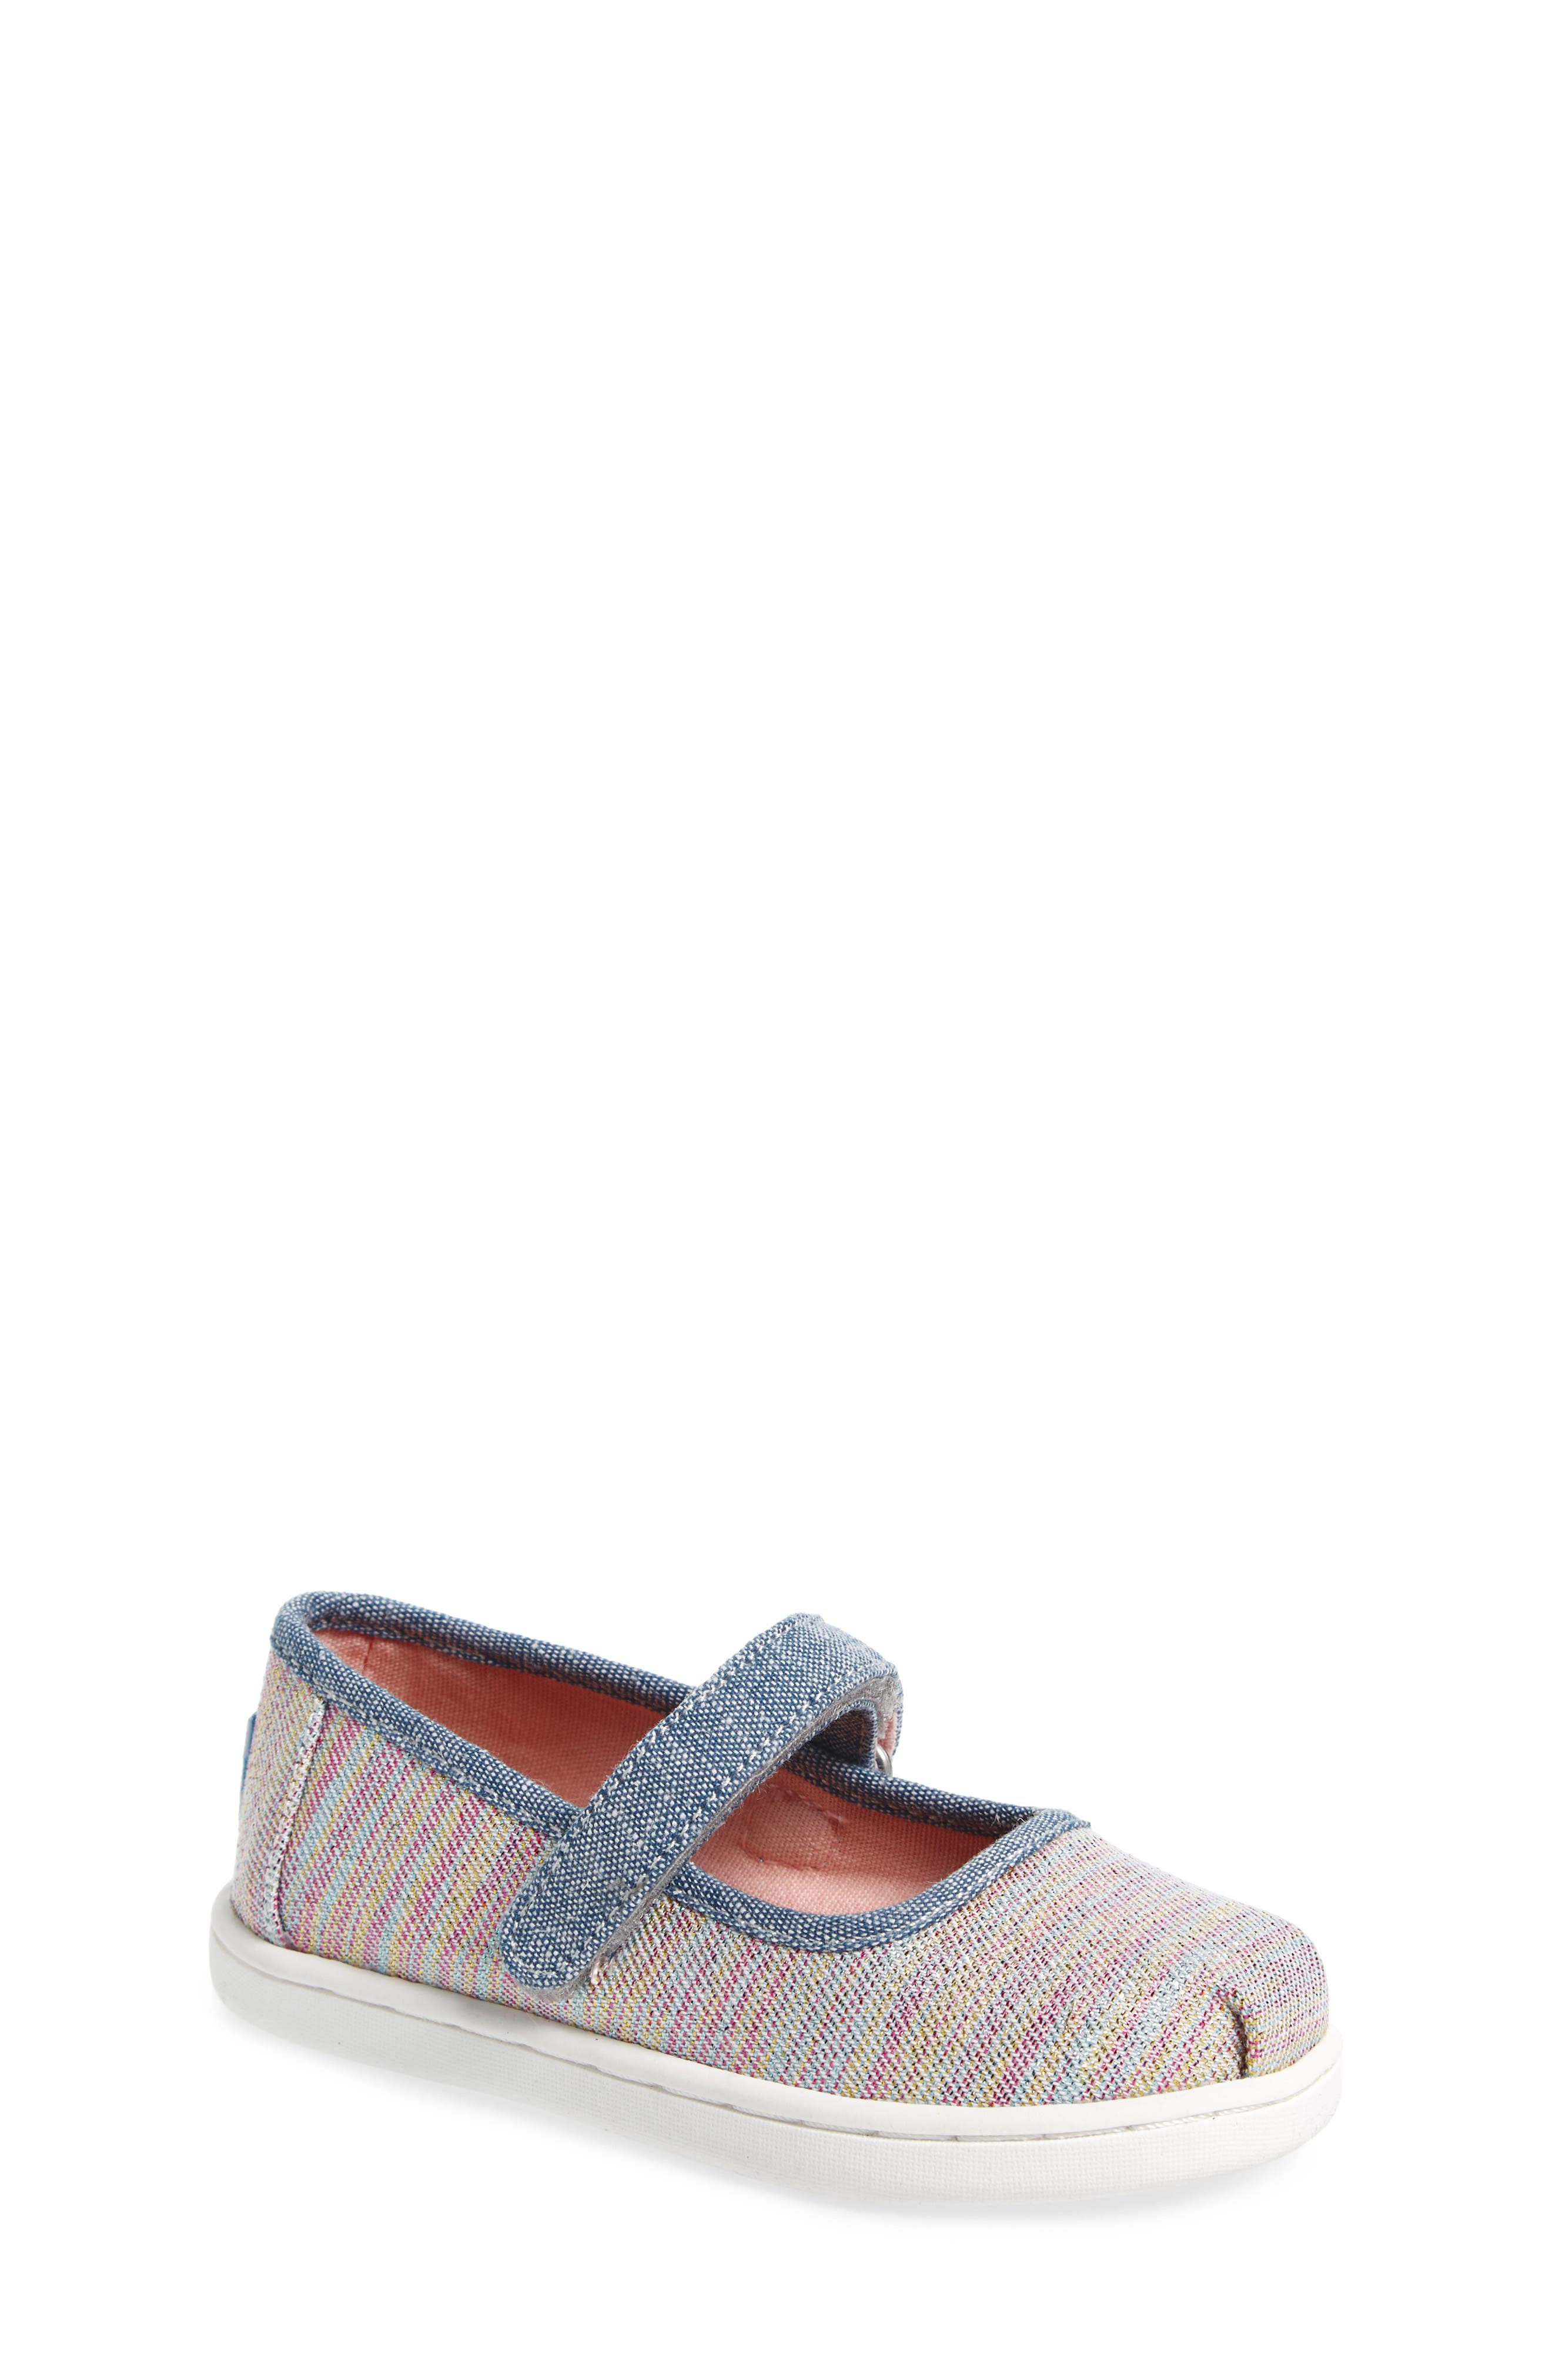 Mary Jane Sneaker,                             Main thumbnail 1, color,                             PINK MULTI TWILL GLIMMER